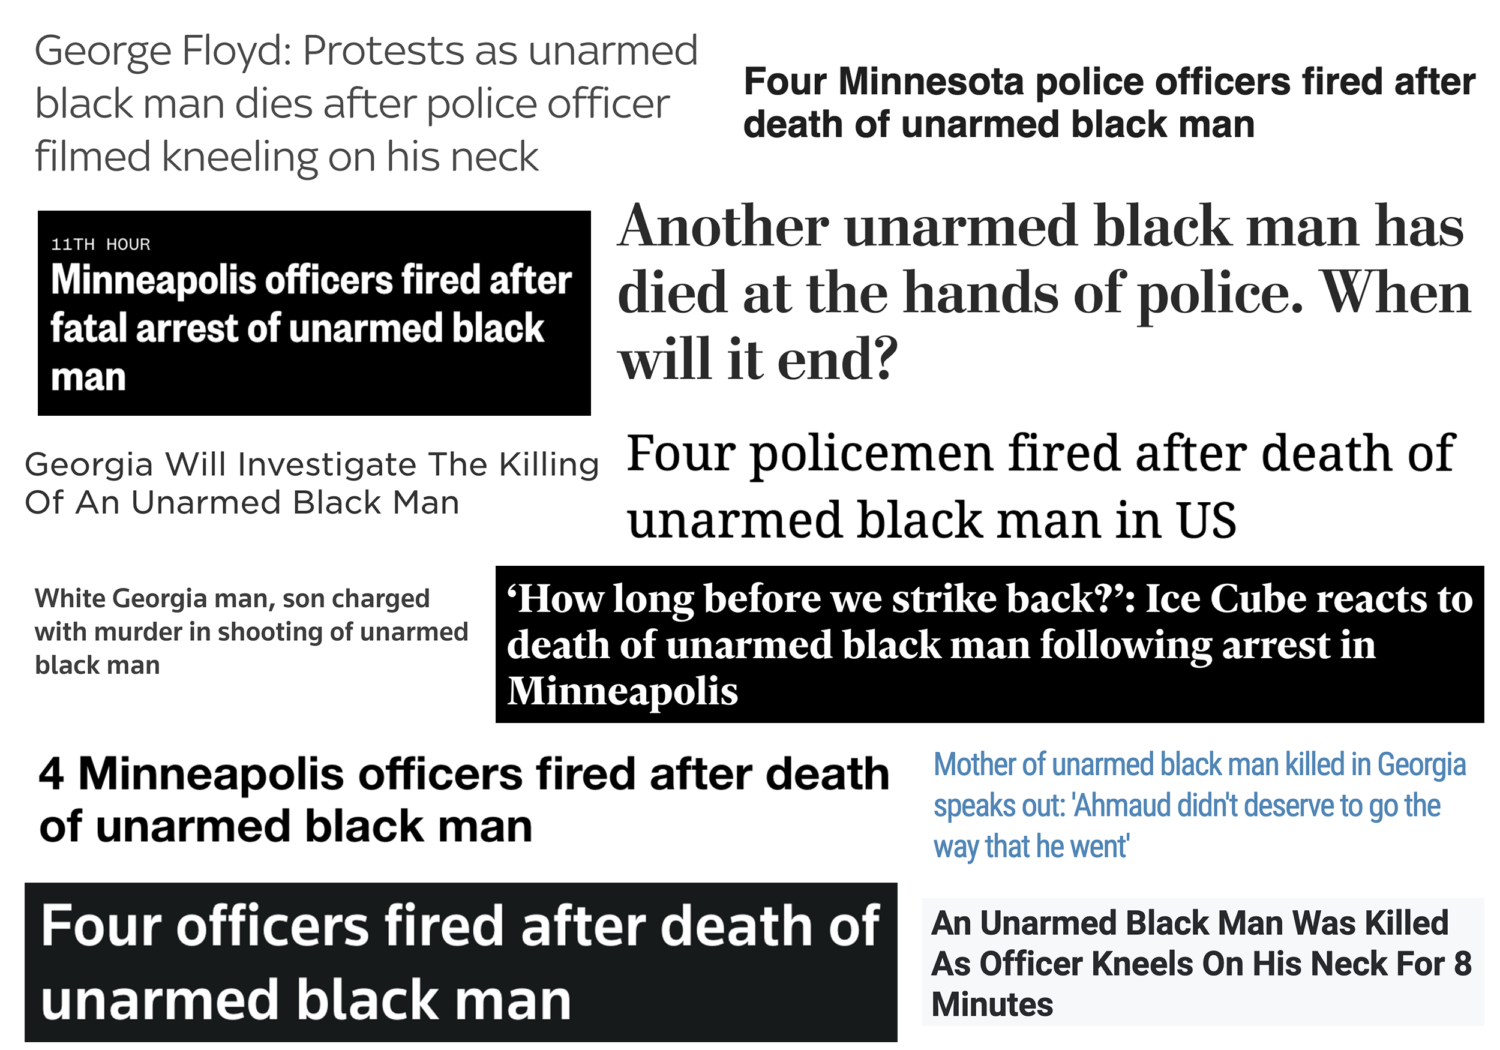 The Importance of Language: Violence against Black Lives and White Supremacy